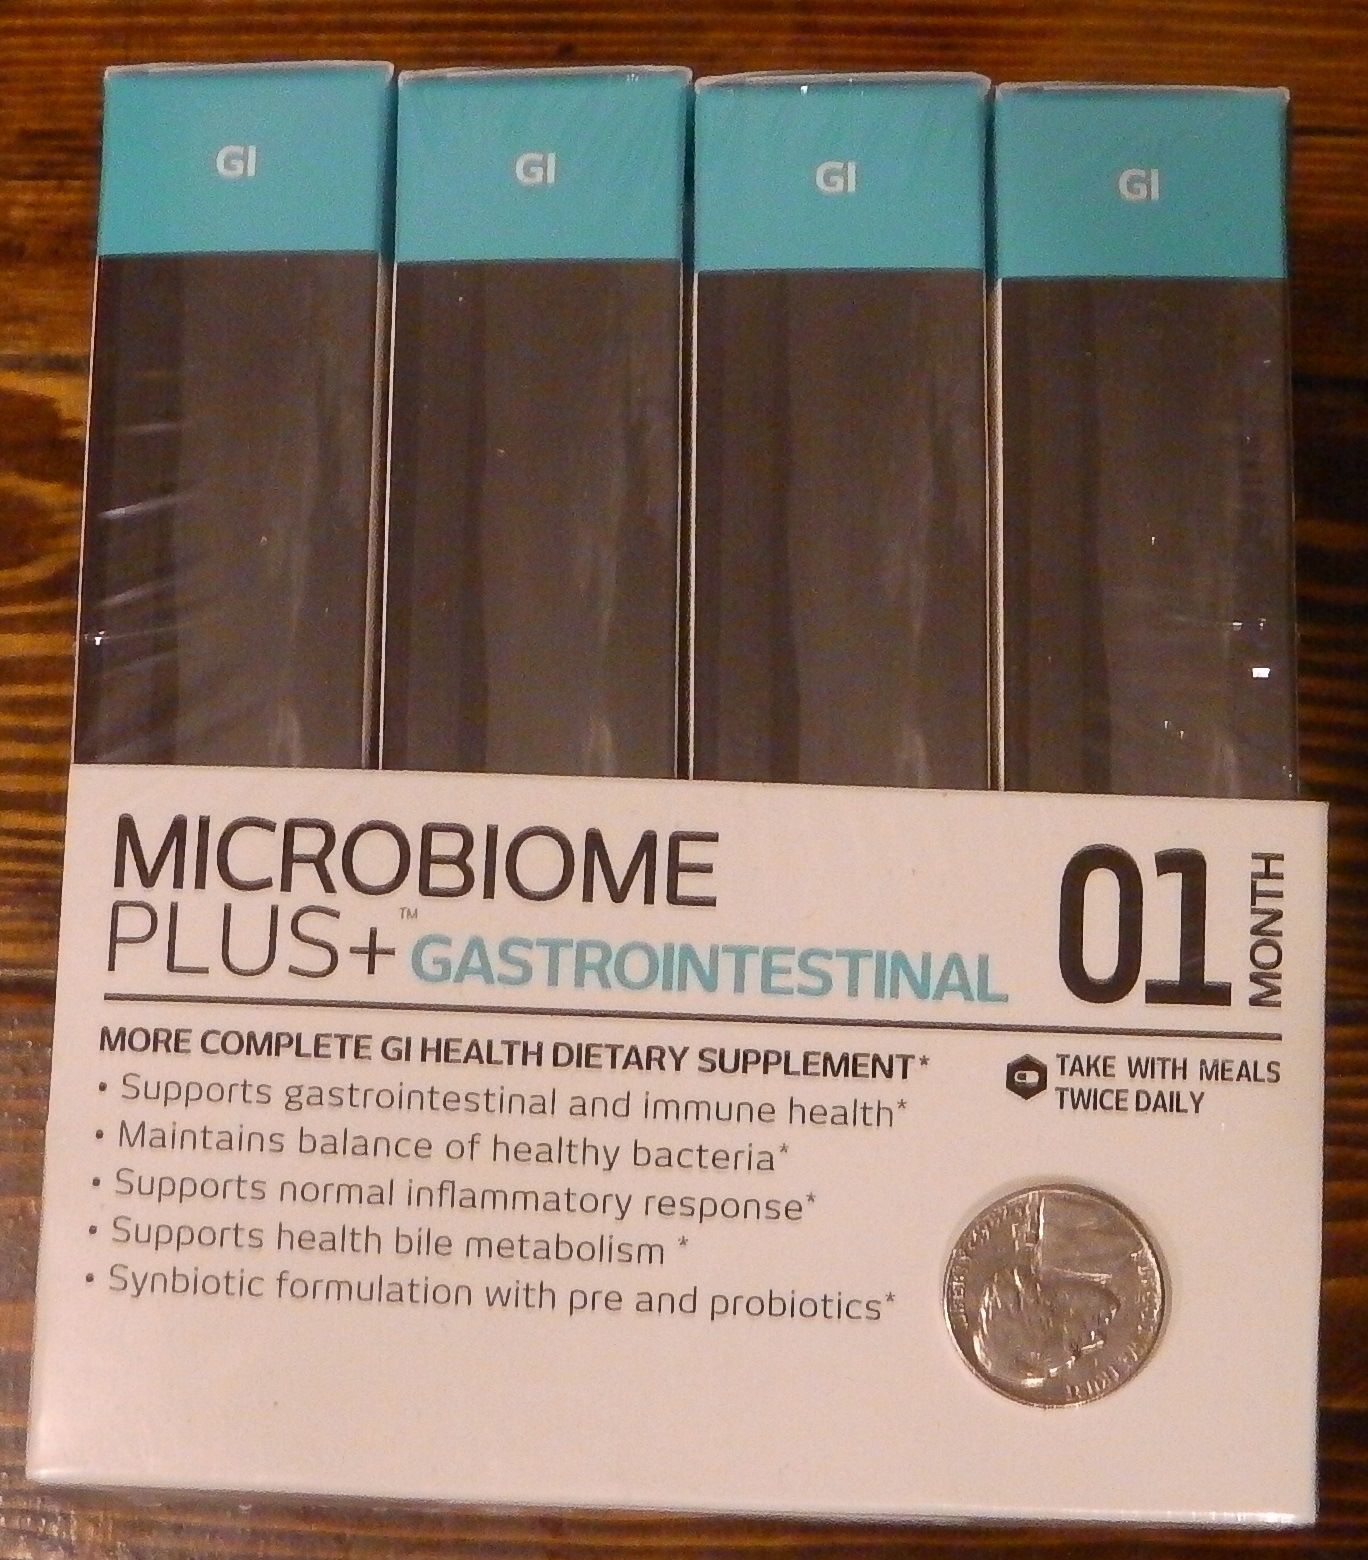 Microbiome Plus+GI Probiotic